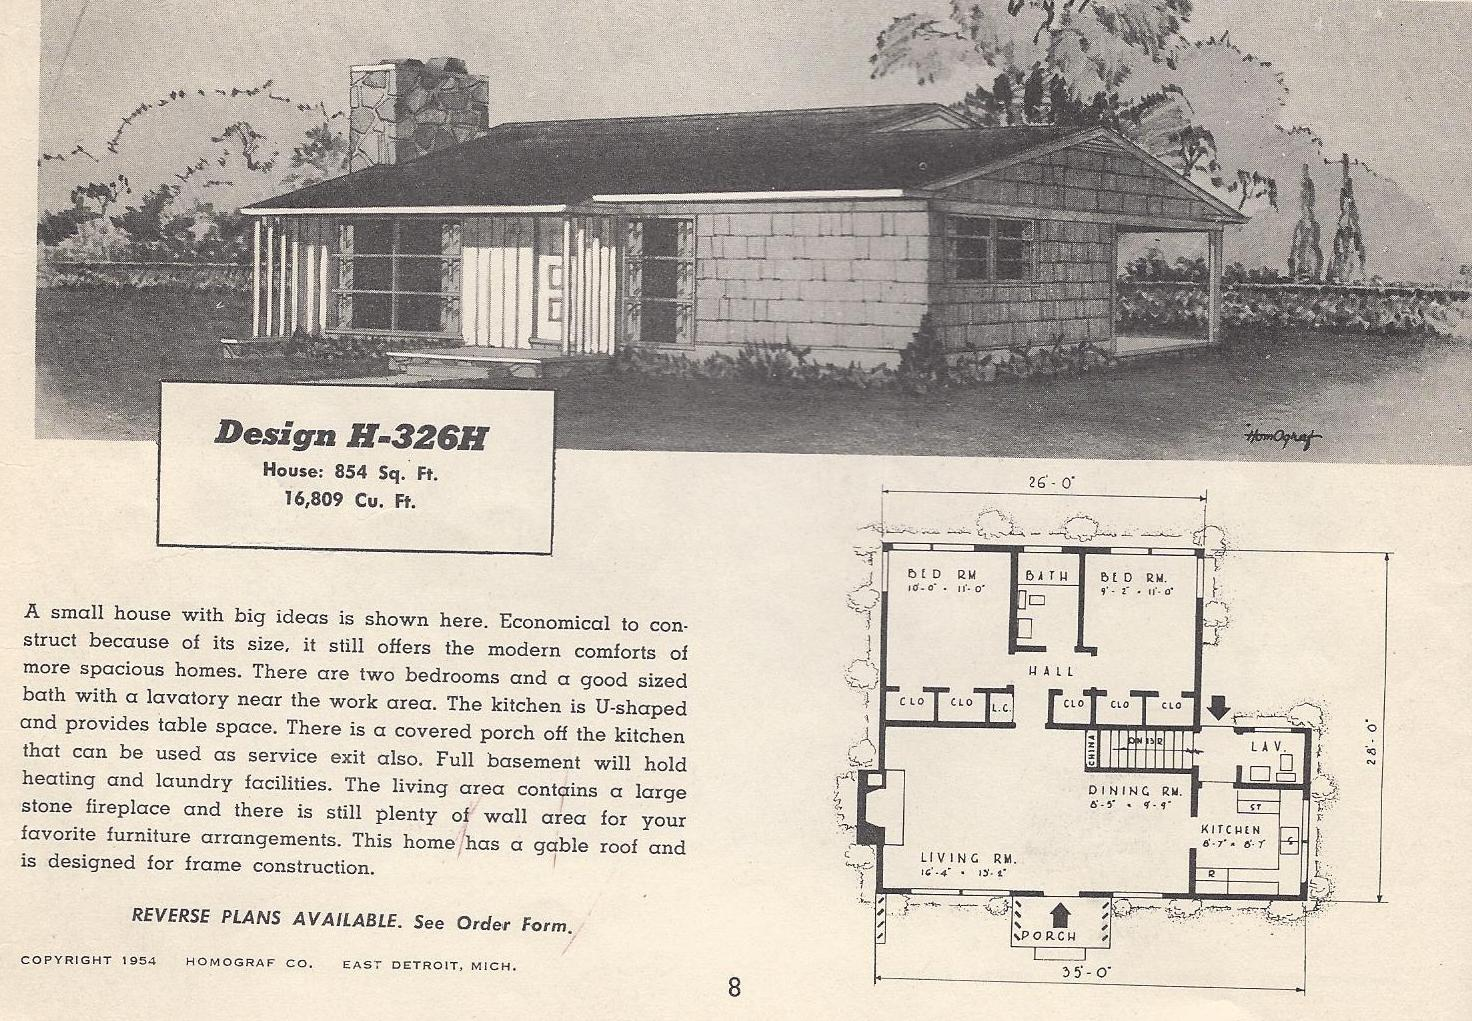 Vintage house plans 326h antique alter ego for Vintage ranch house plans